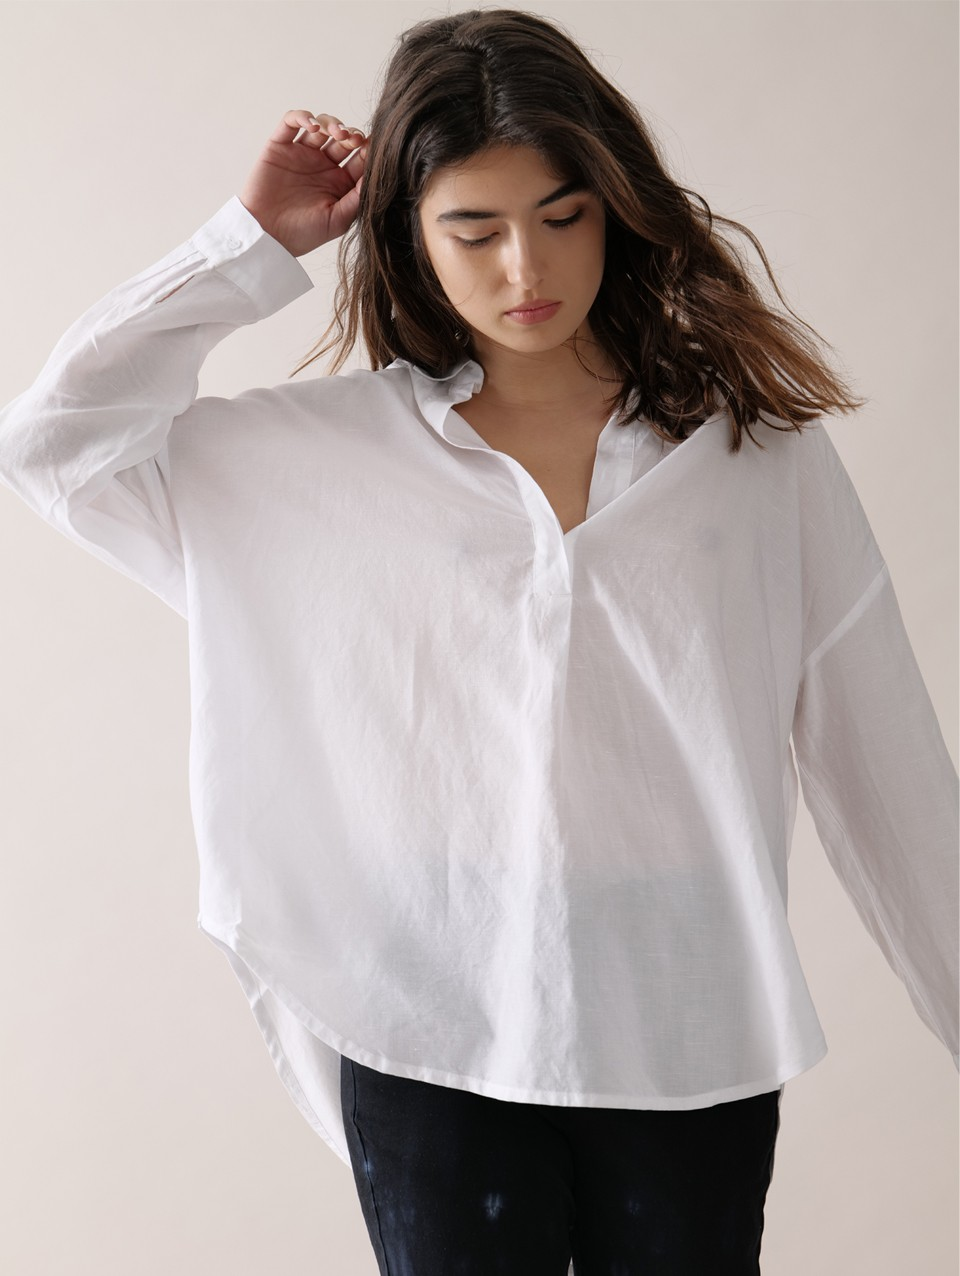 Raise Placket Blouse